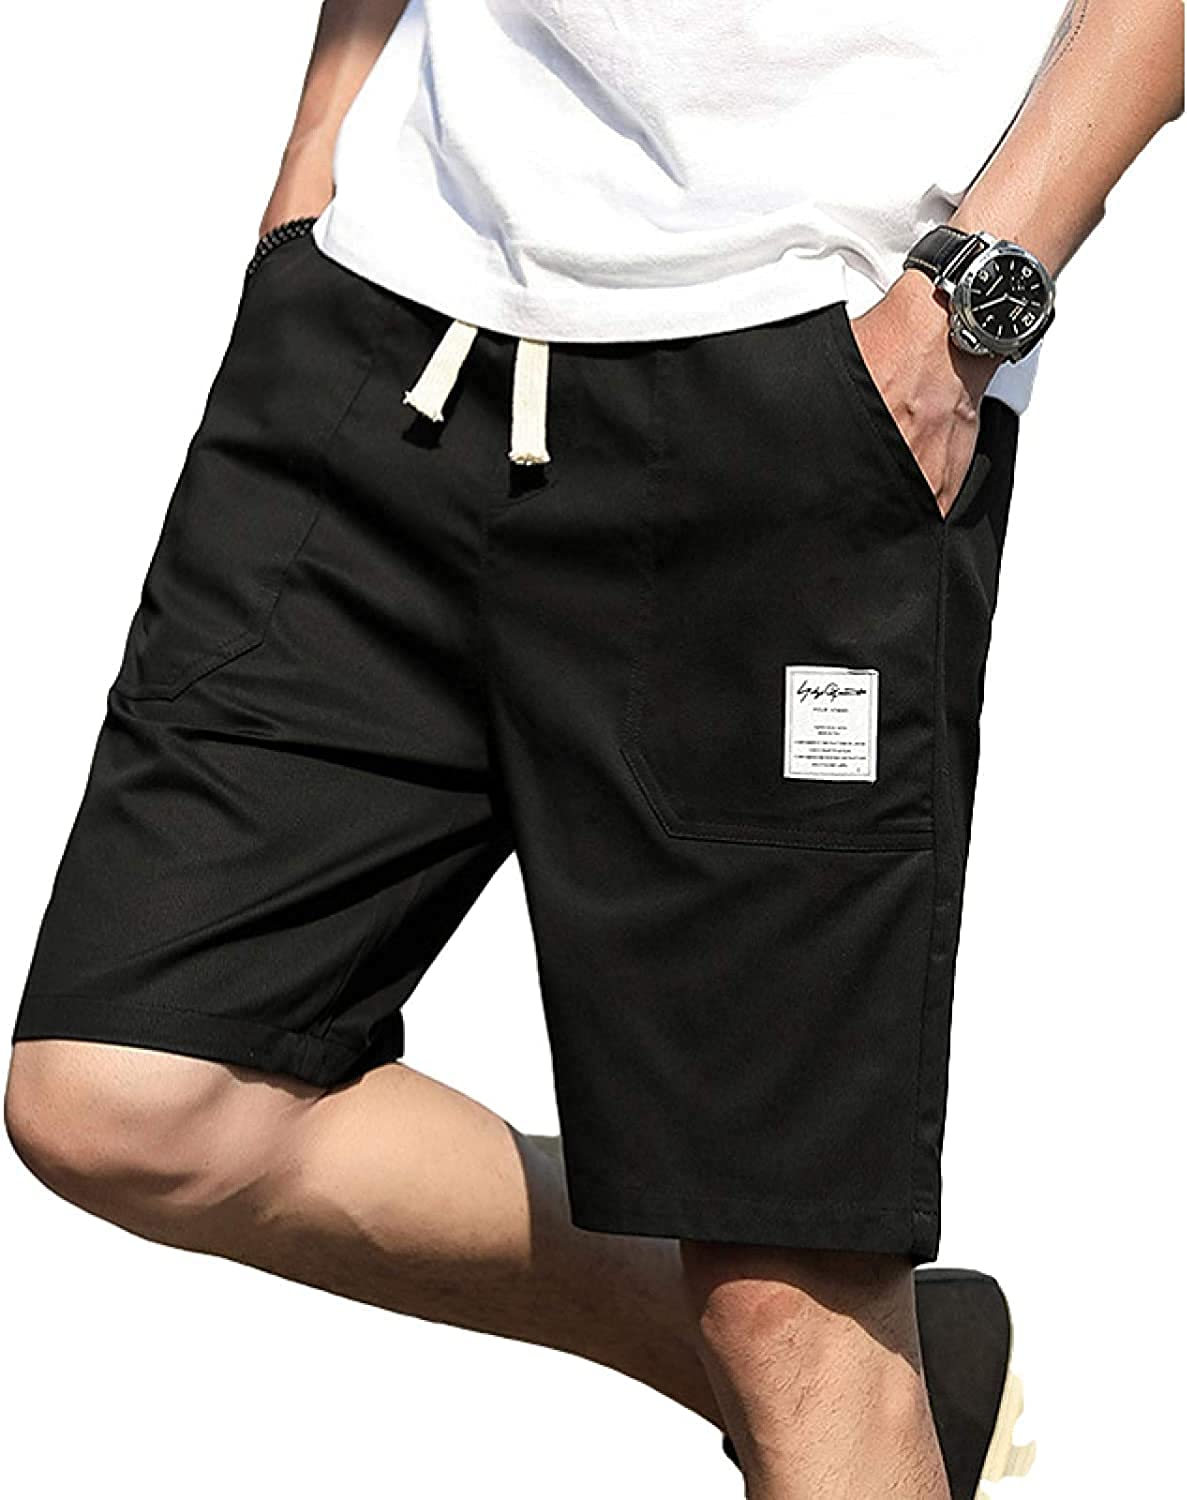 Men's Shorts Fashion Solid Color Simple Leisure All-Match Comfortable Outdoor Black